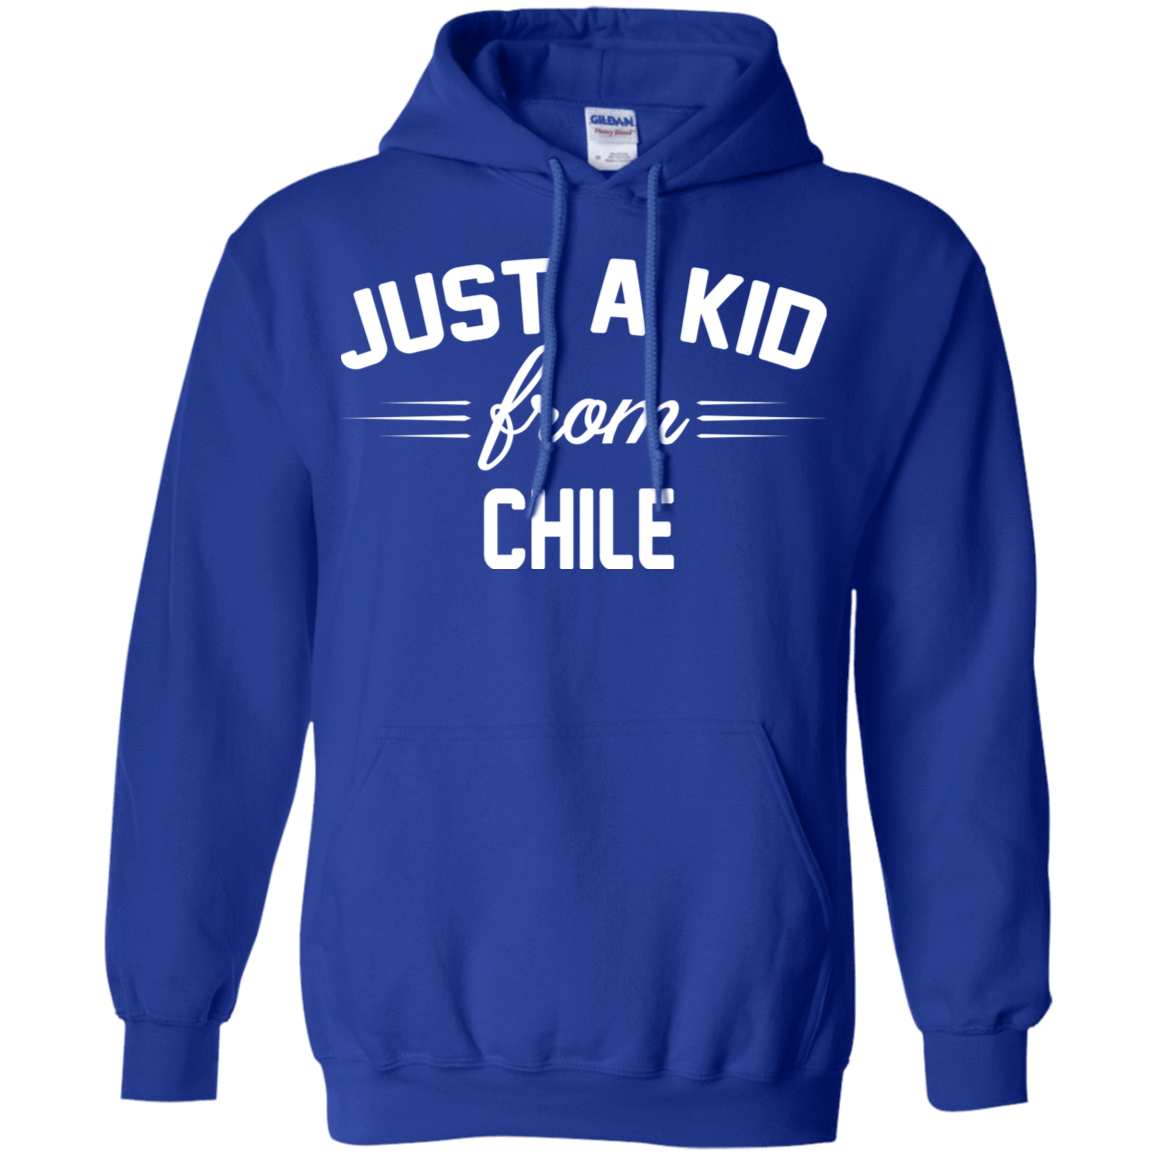 Just a Kid Store | Chile T-Shirts, Hoodie, Tank 541-4765-72092762-23175 - Tee Ript